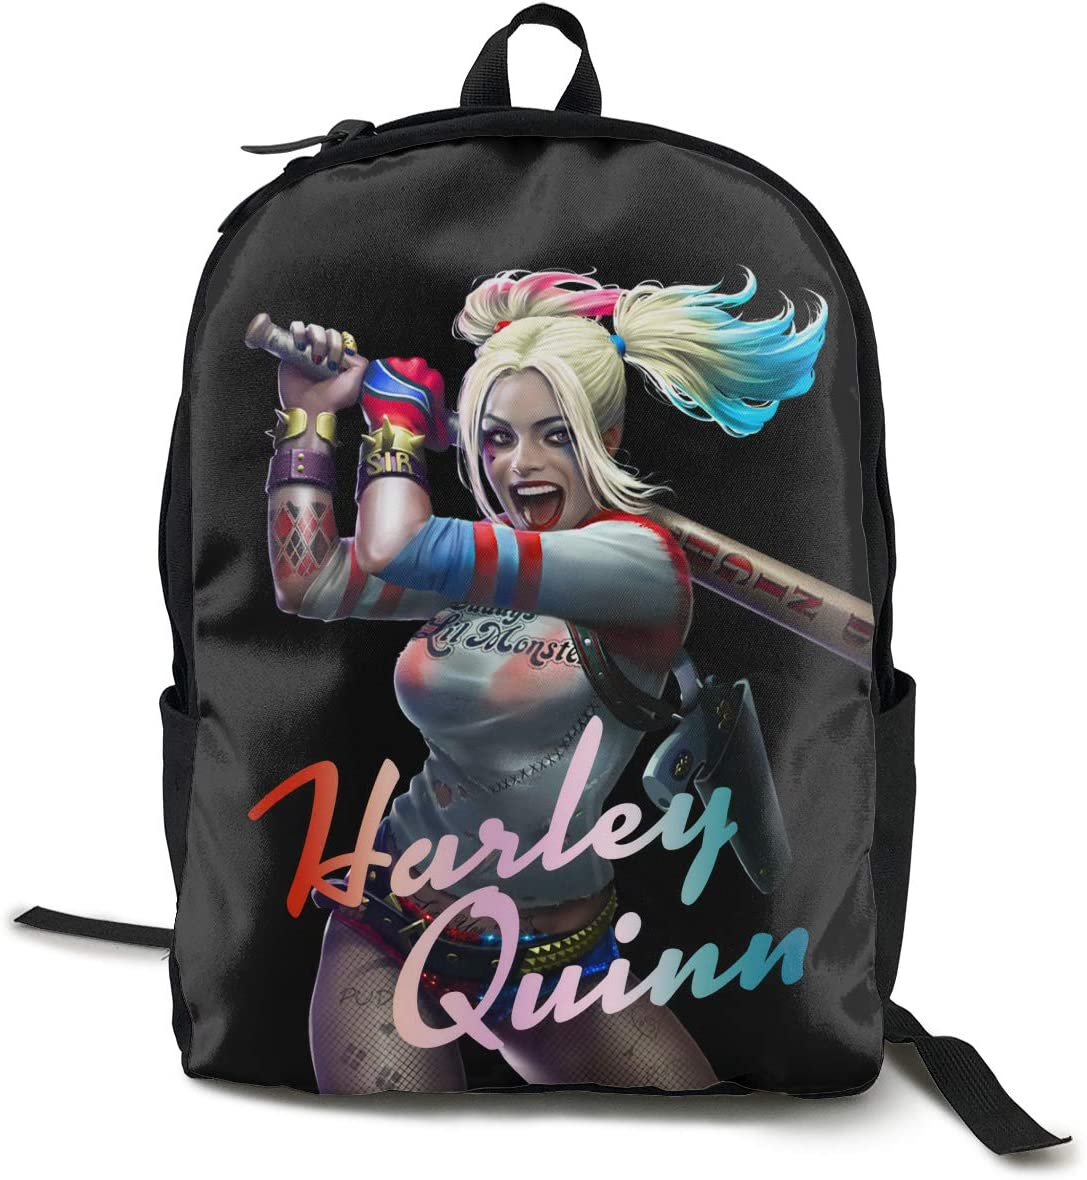 SineRich Harley-Quinn Traveling Backpack College Backpack Student Bookbag Multipurpose Daypacks